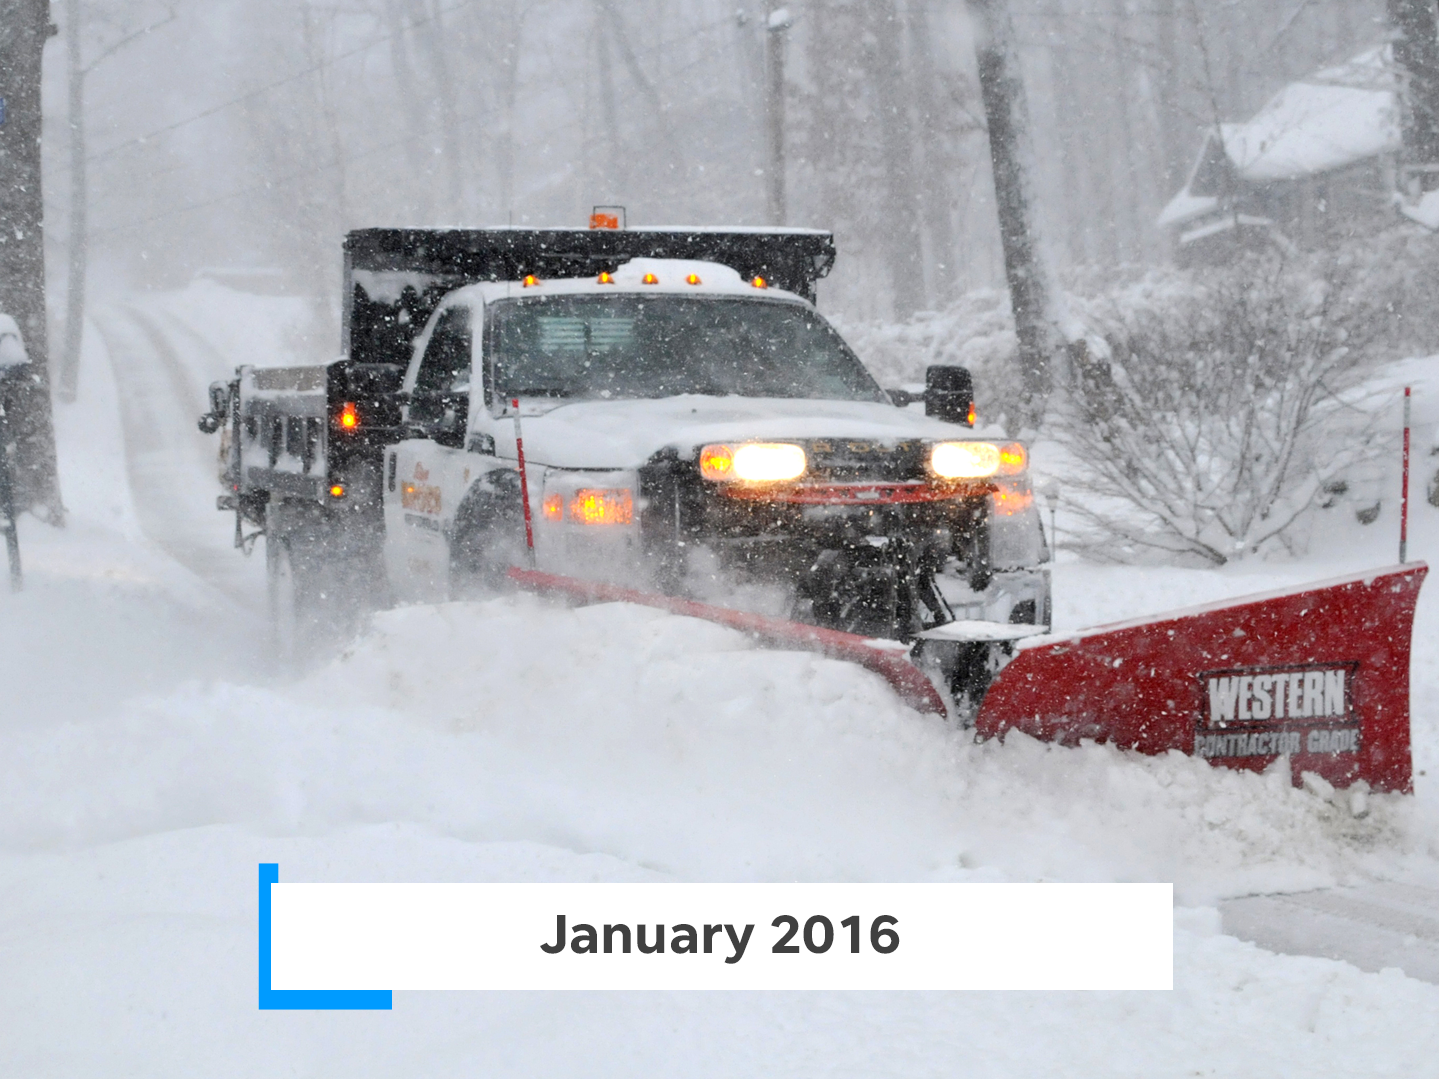 The January 2016 blizzard brought up to 30 inches of snow to New Jersey.